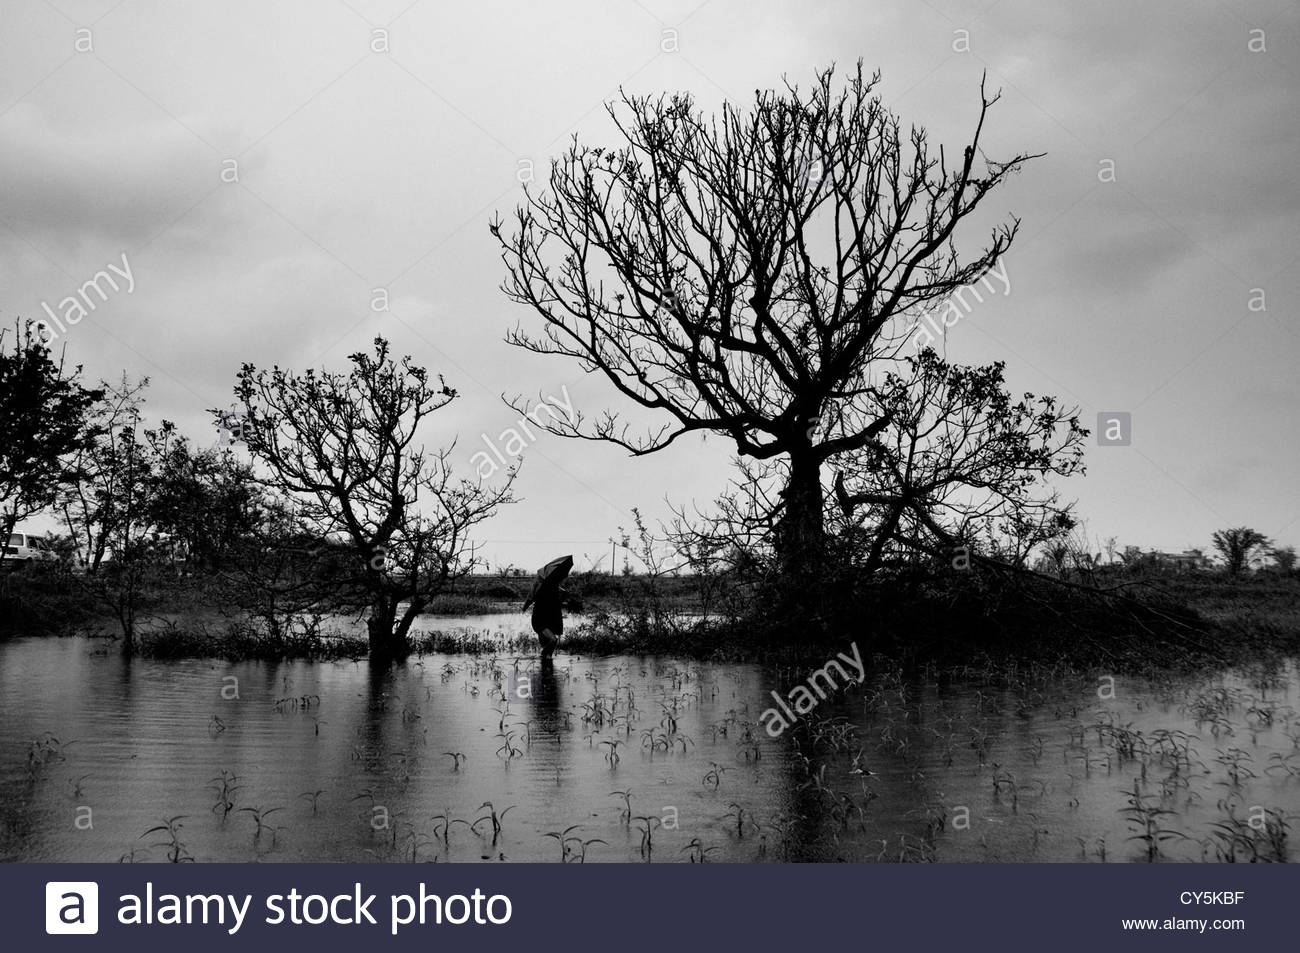 A woman walking in a flooded rural area near Yangon in the Republic of the Union of Myanmar or Burma - Stock Image